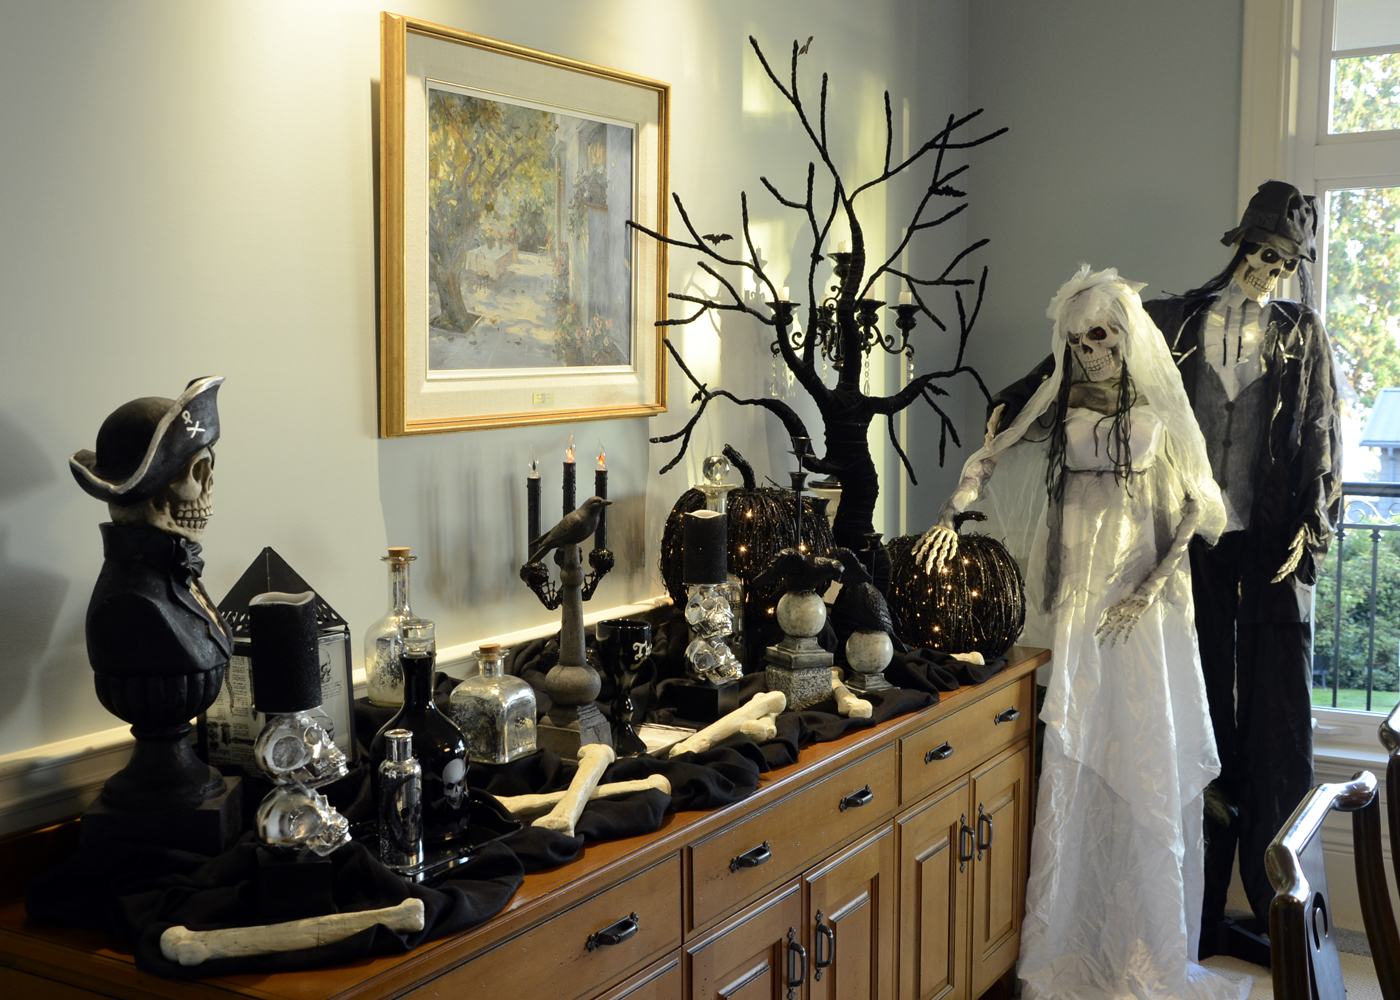 Lita lane decorating our home for halloween for Haunted dining room ideas